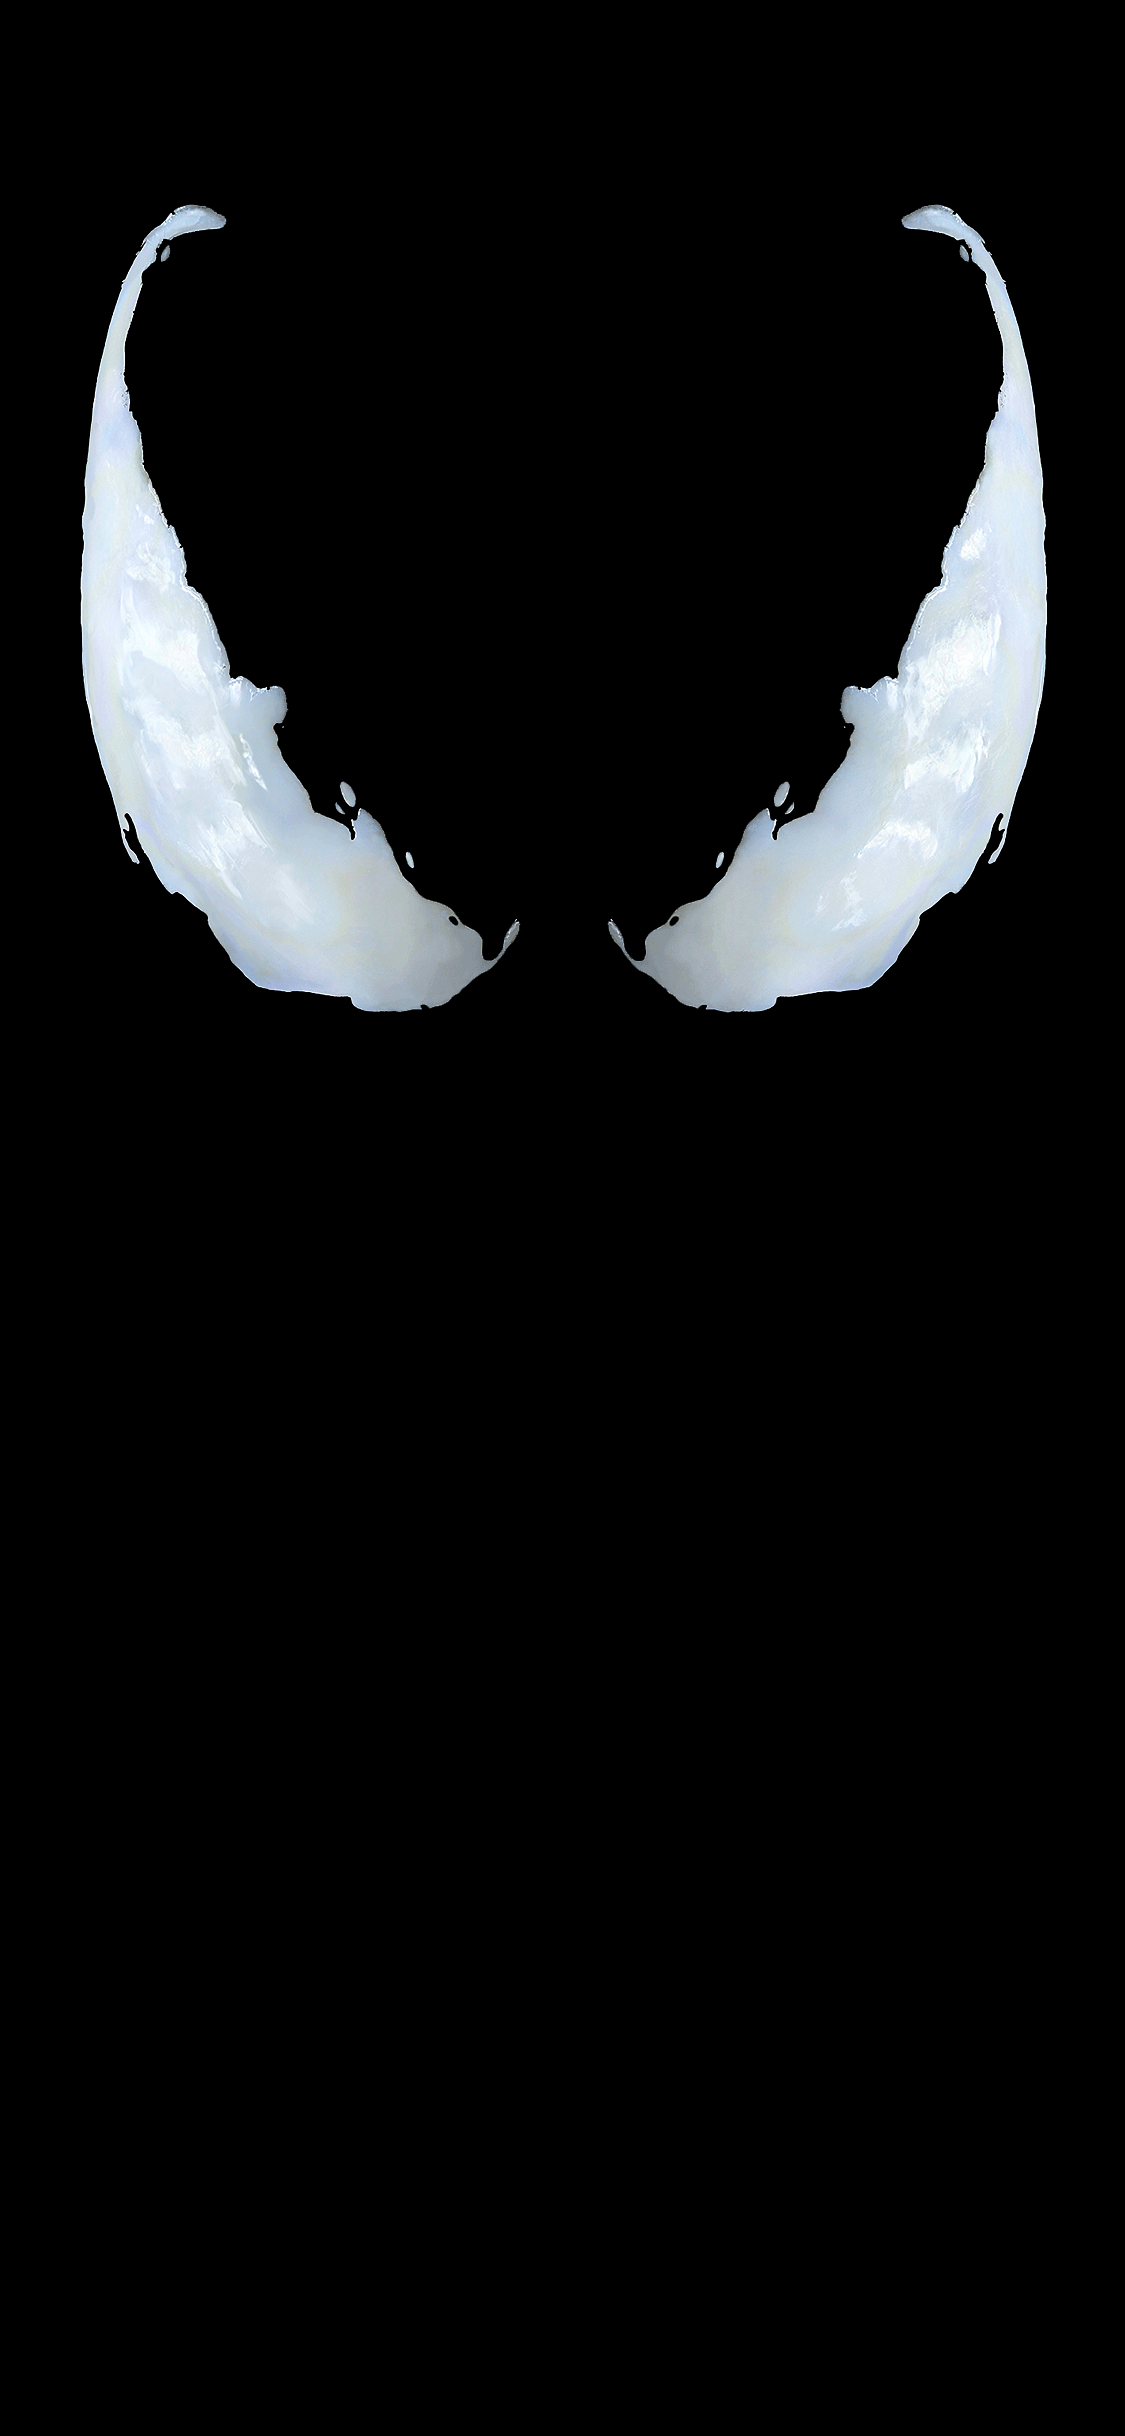 iPhone wallpaper venom movie dark Venom